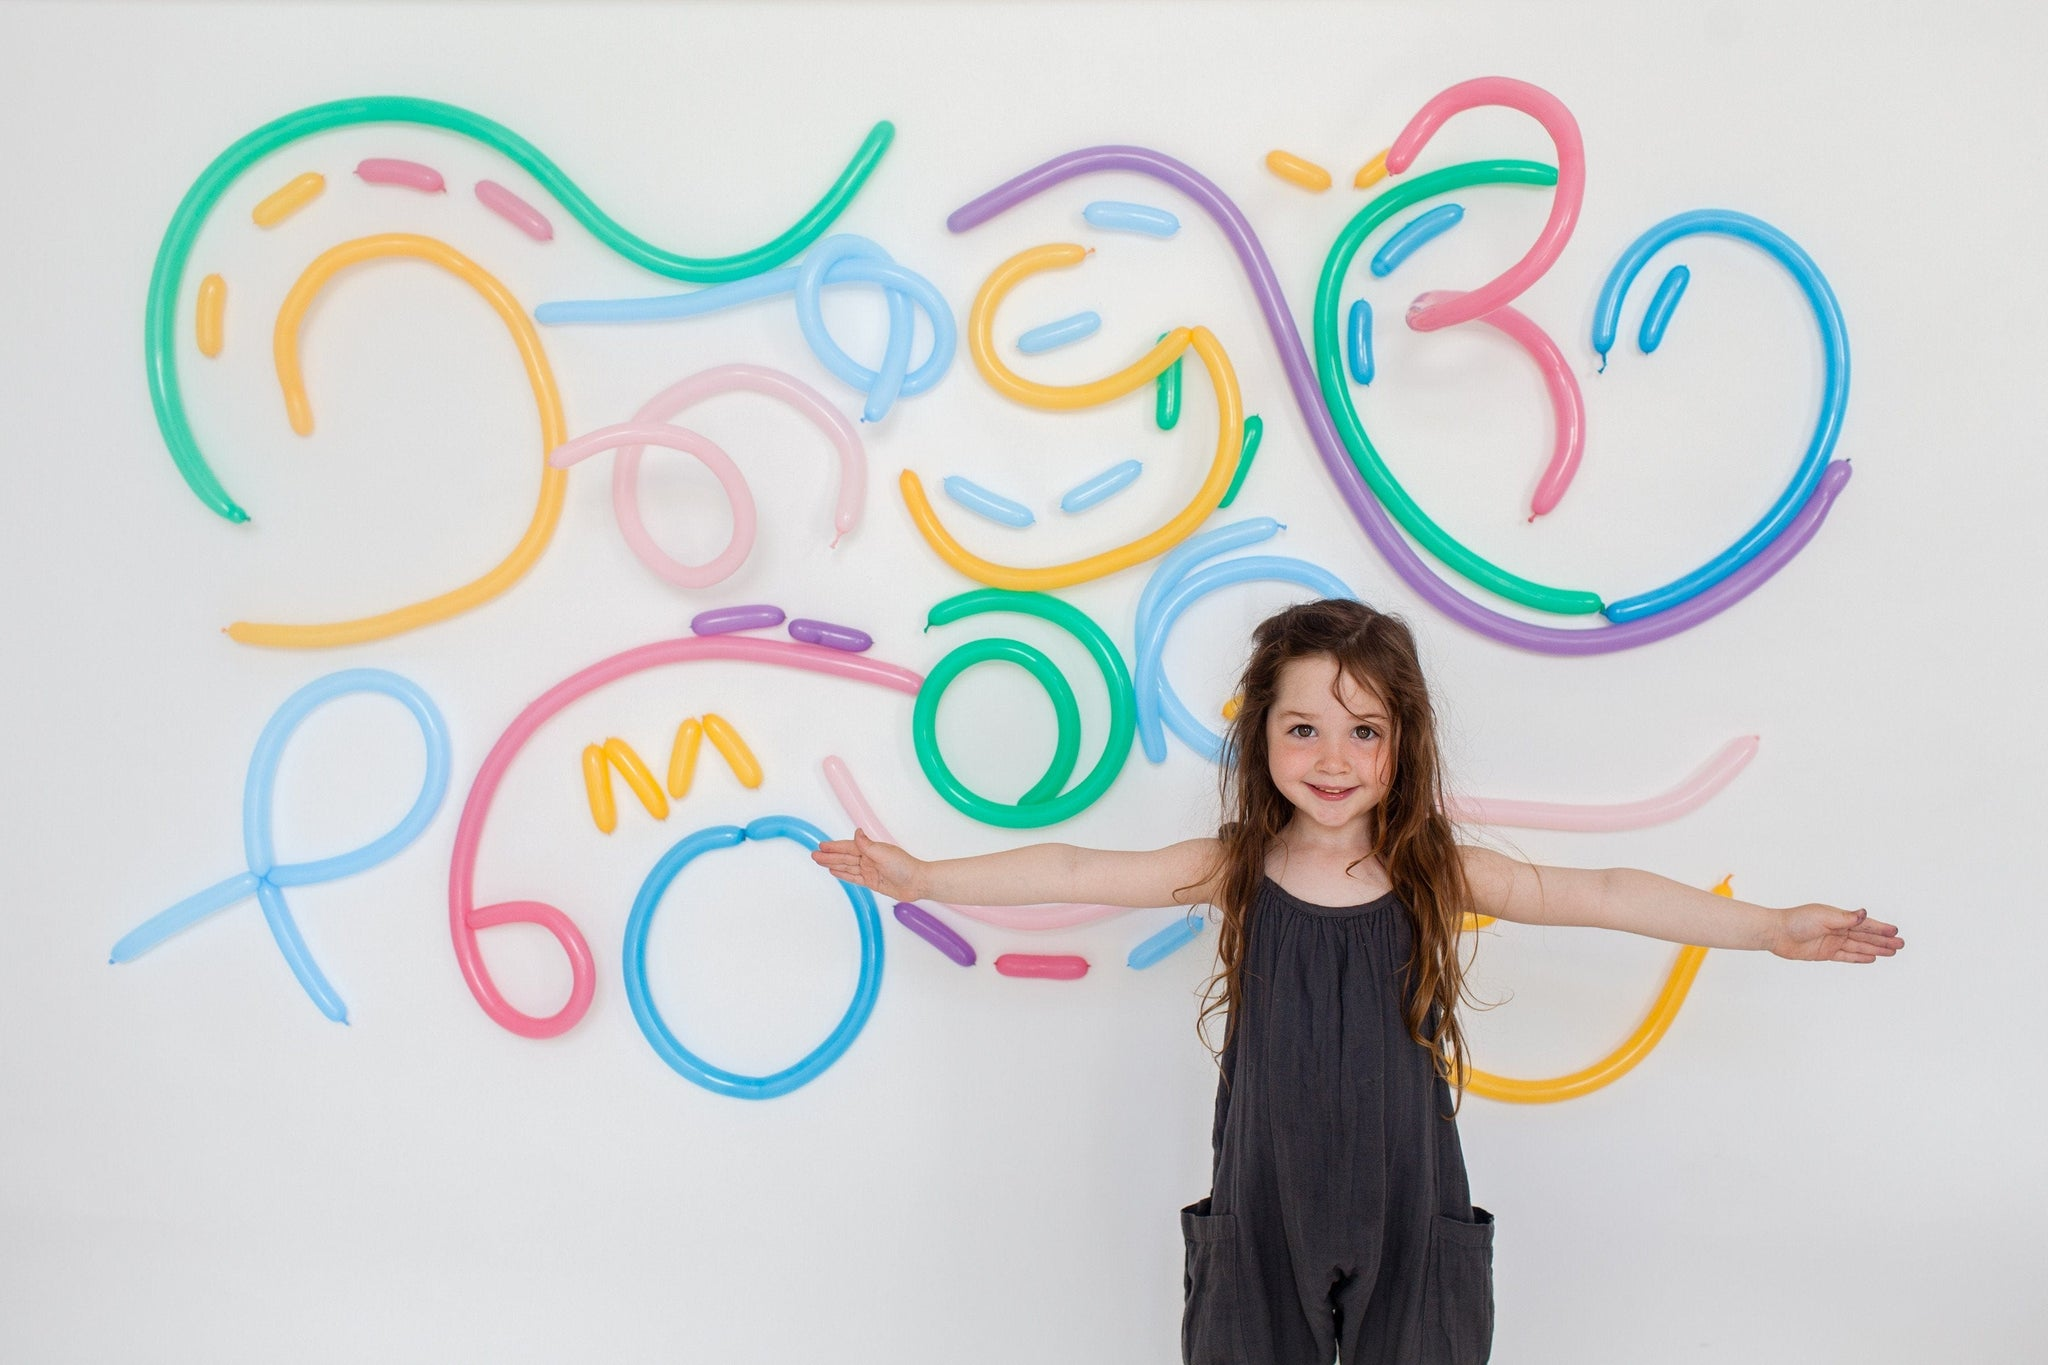 Cool Balloon Backdrop Wall made with Modelling Balloons